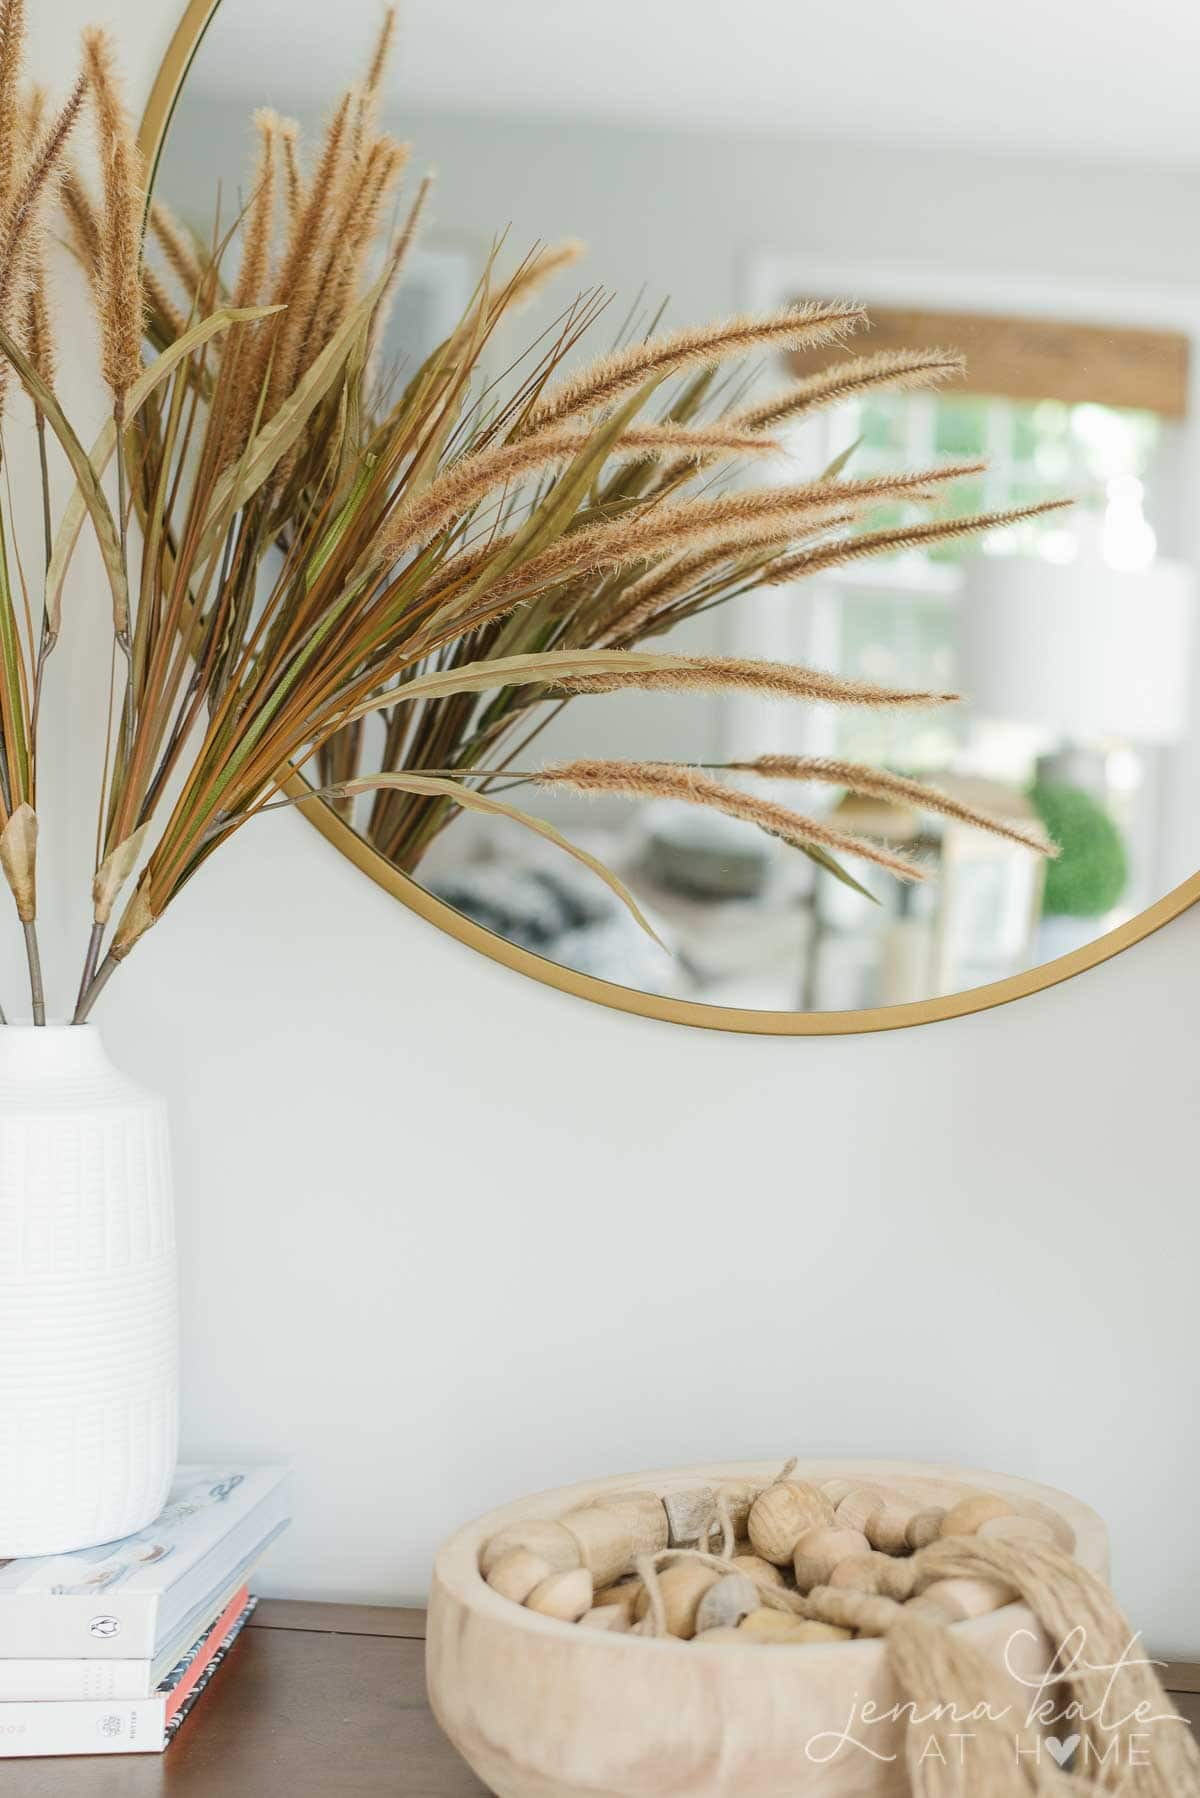 A minimalist approach to decorating for fall using grasses or branches